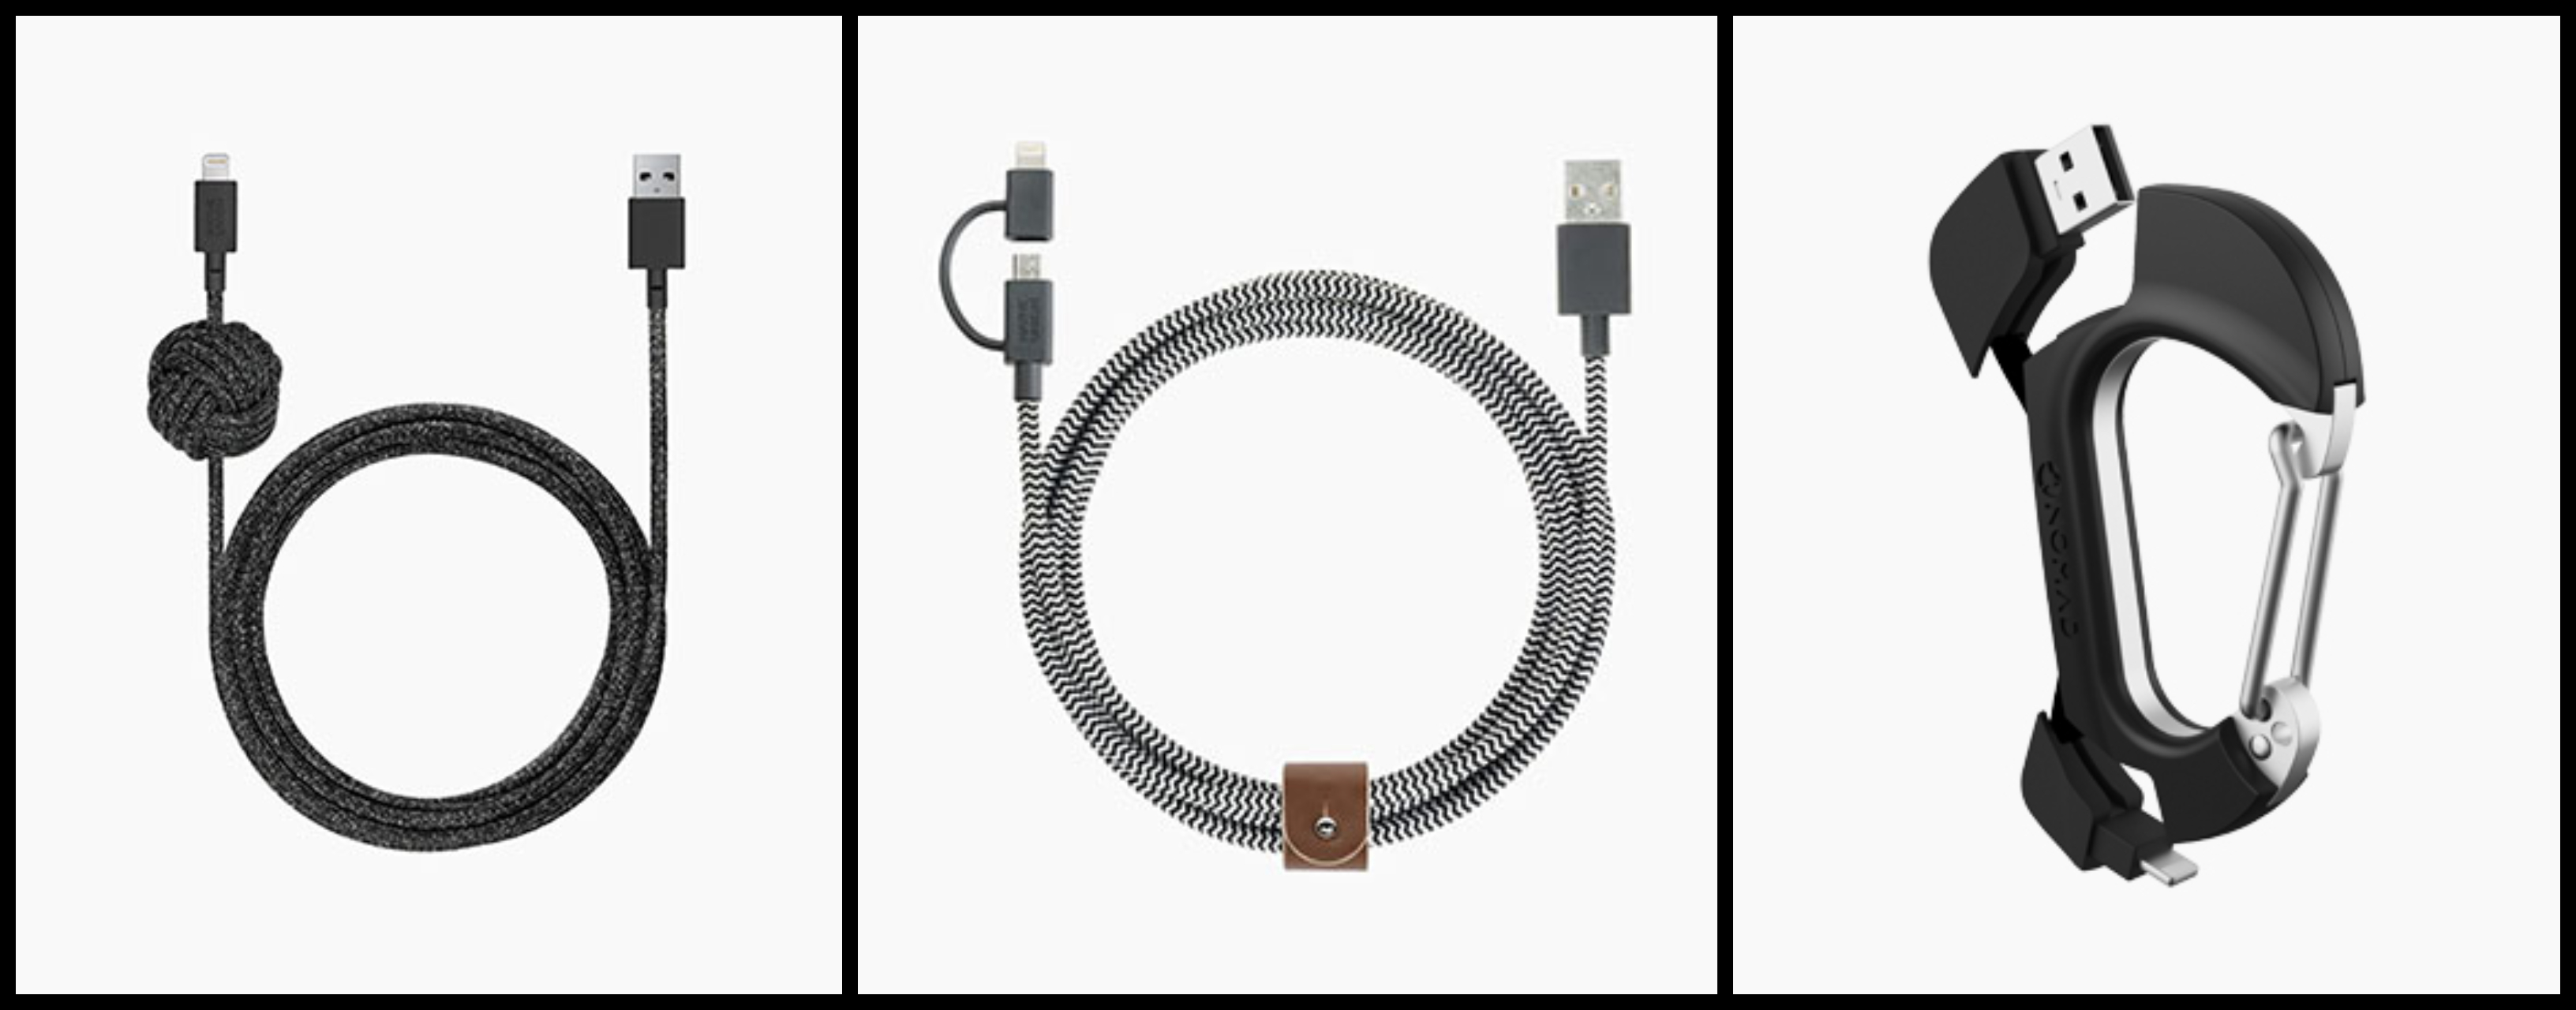 Native Union Night Cable, Native Union Belt Cable Twinhead, Nomad Carabiner Charging Cable‍